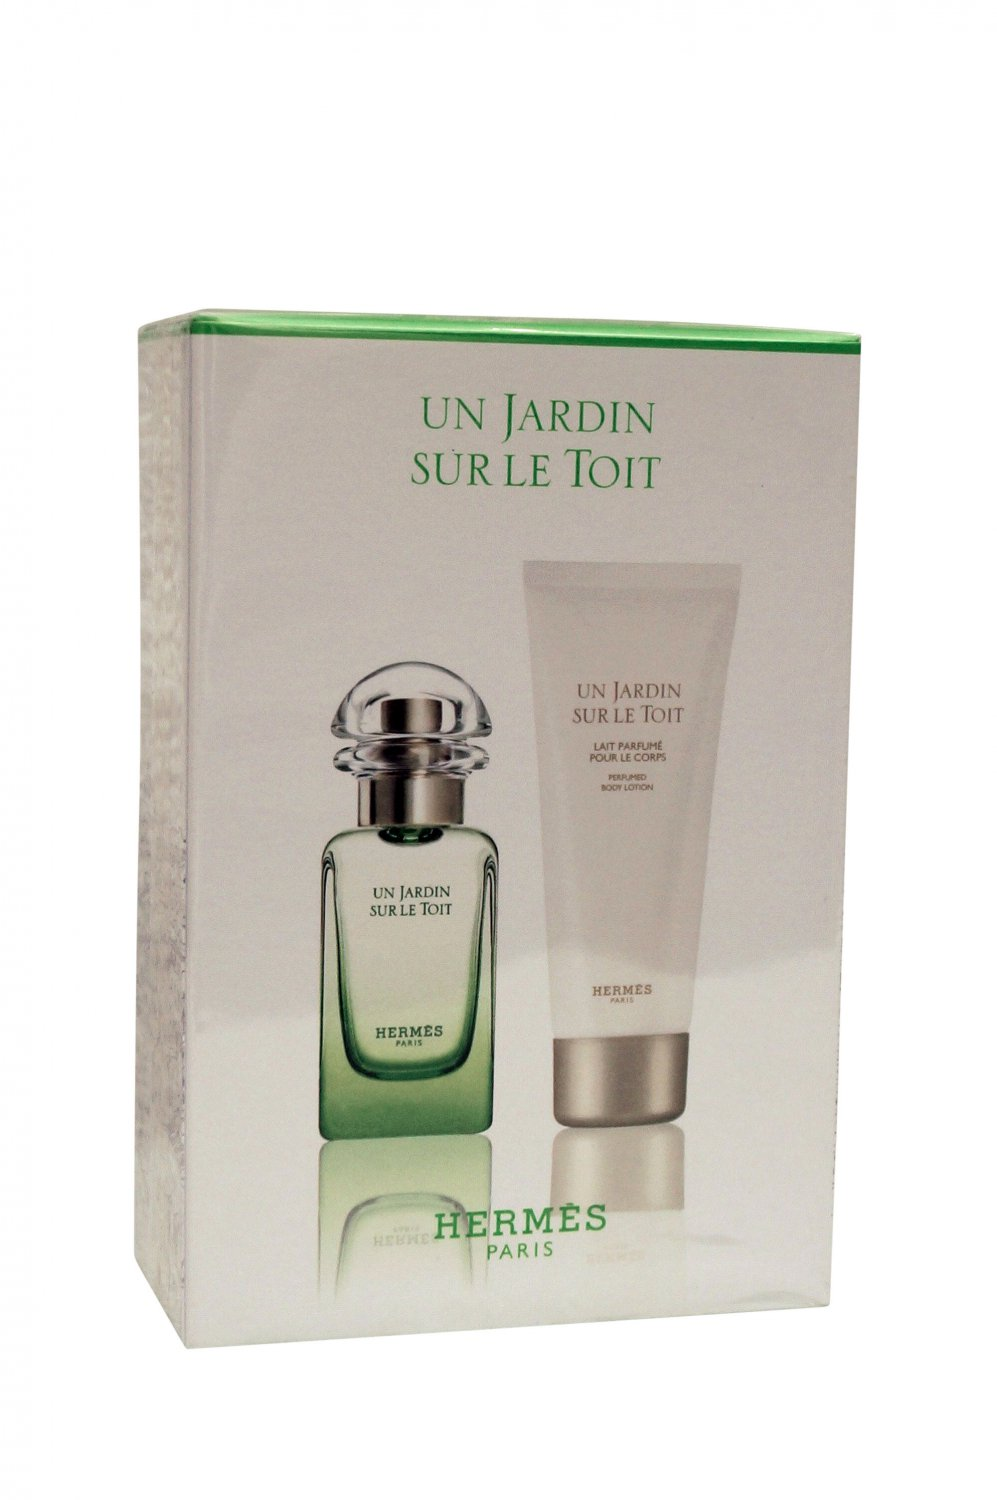 Hermes Un Jardin Sur Le Toit 2 Piece Gift Set EDT Spray, 1.6 oz.